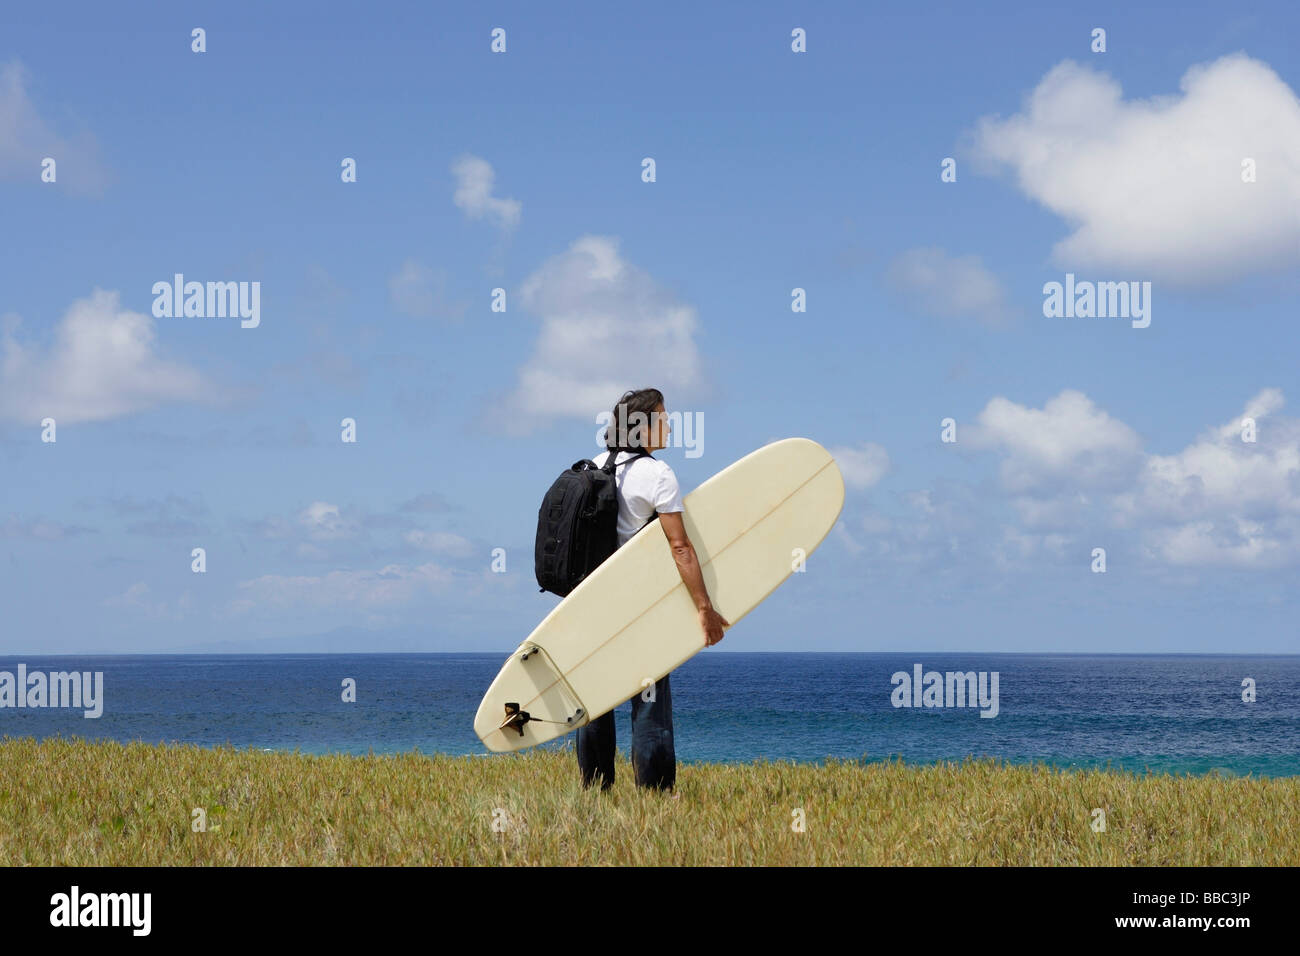 man holding surf board, looking out to sea - Stock Image